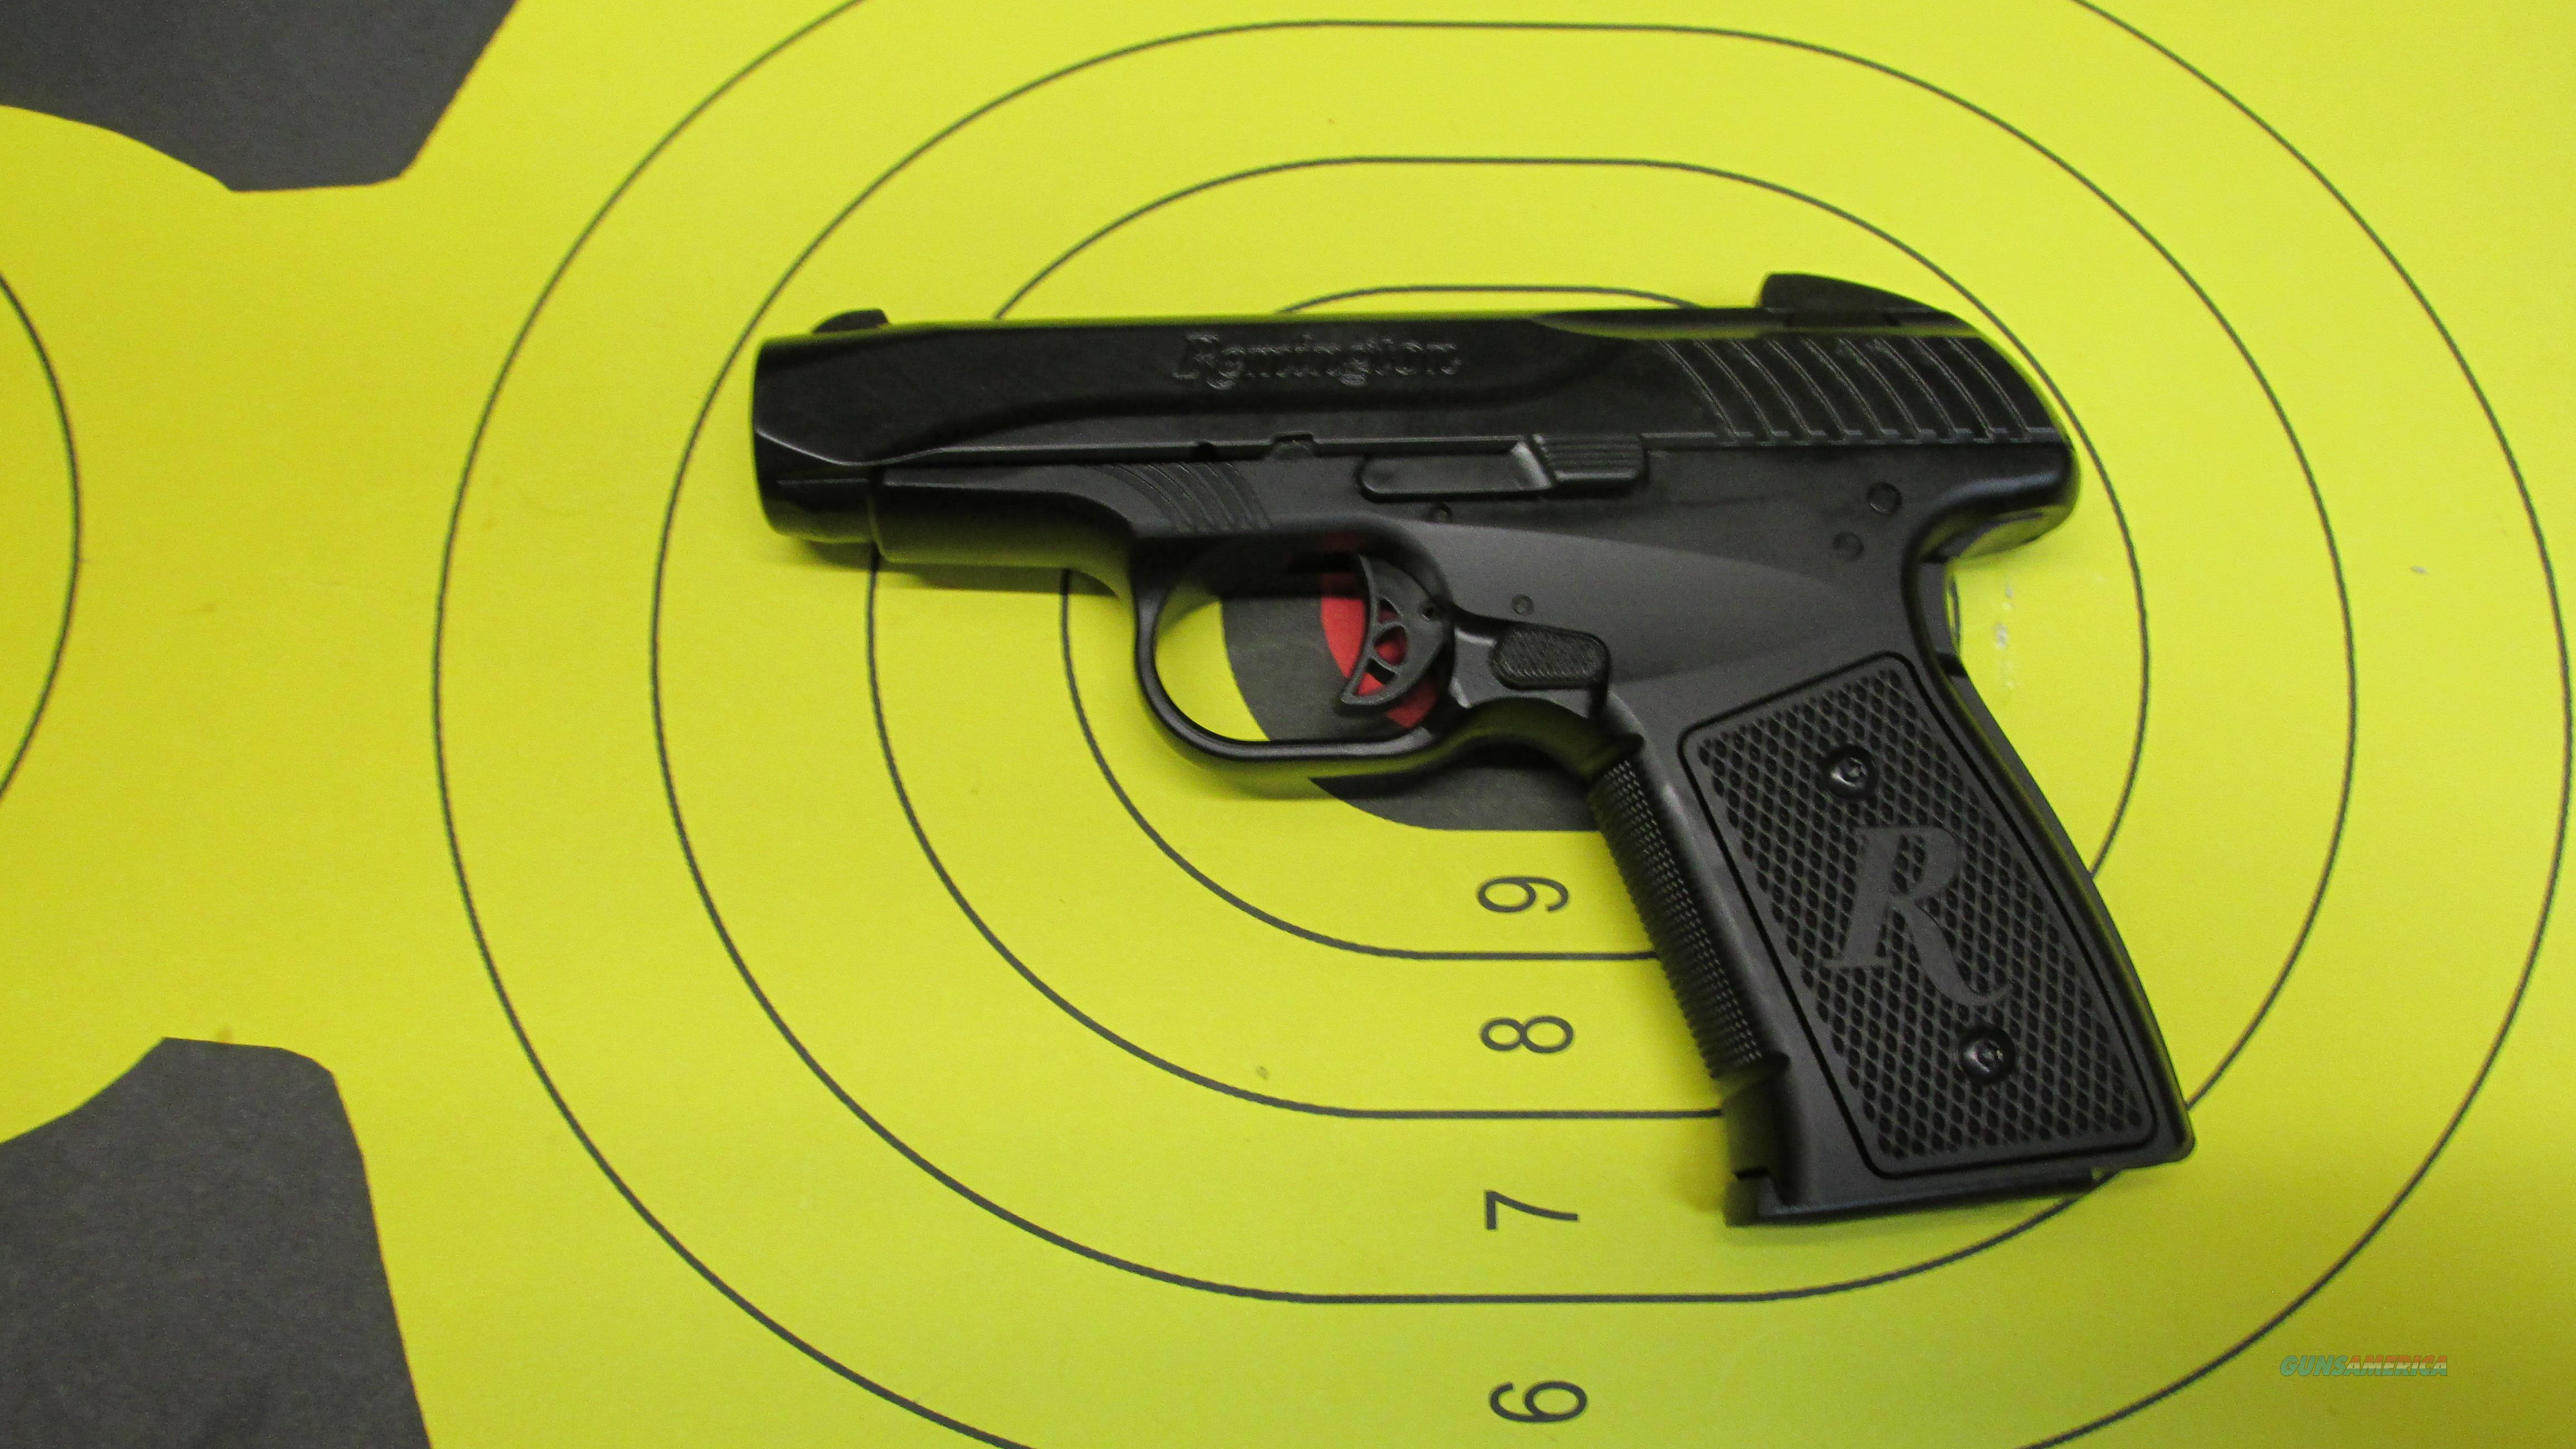 "REMINGTON R51 9MM PISTOL 2 7 ROUND MAGAZINES WITH A 3.4"" BARREL  Guns > Pistols > Remington Pistols XP-100"